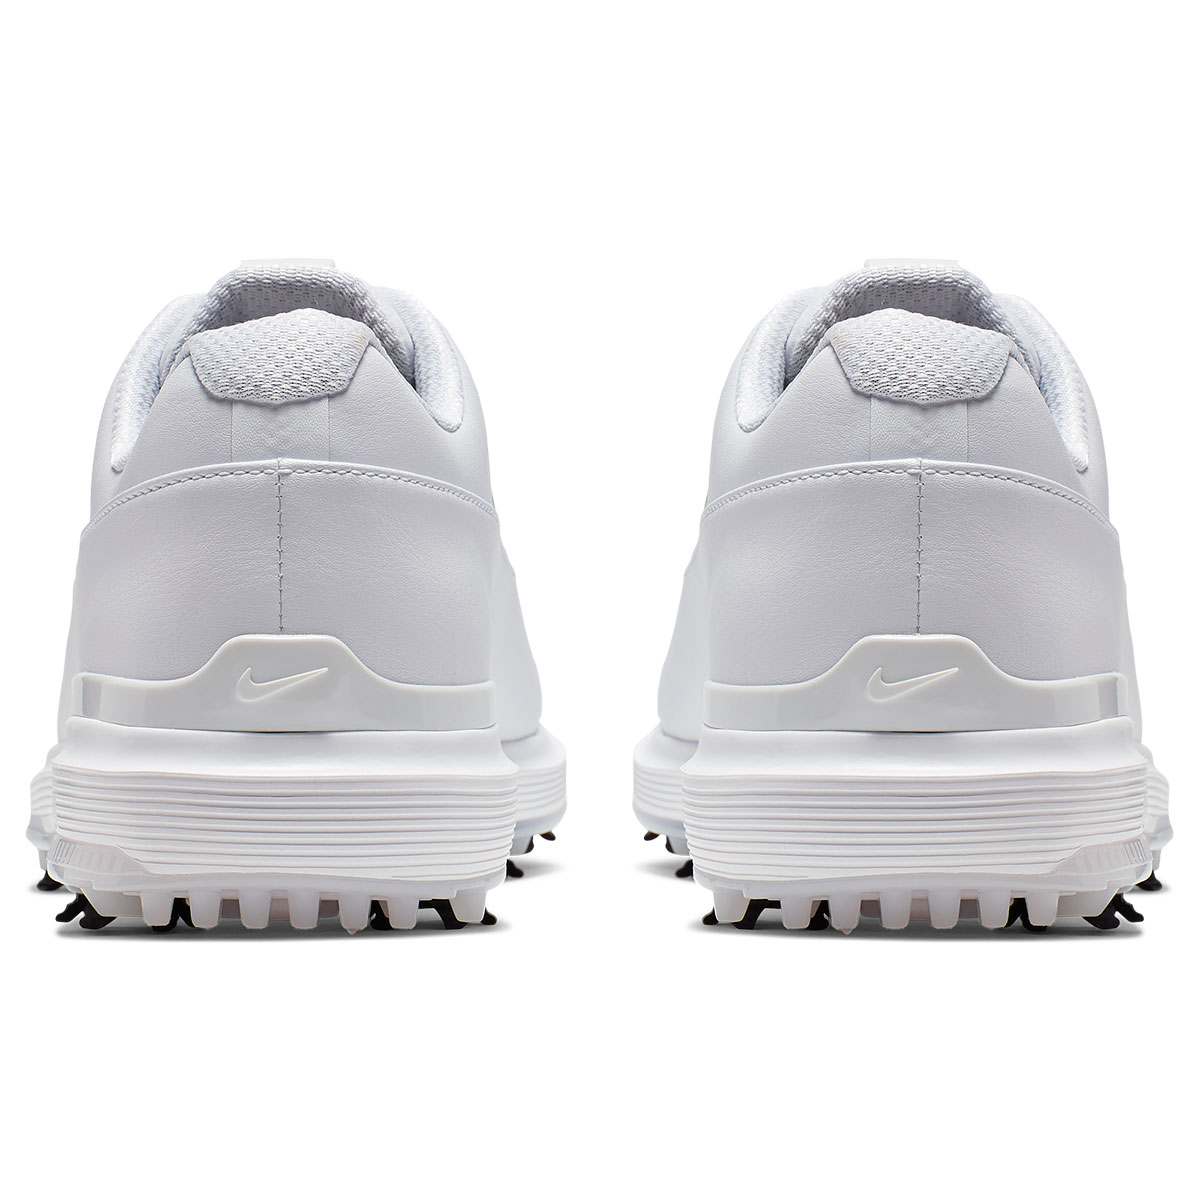 3c6d71882f35 Nike Golf Air Zoom Victory Pro Shoes from american golf